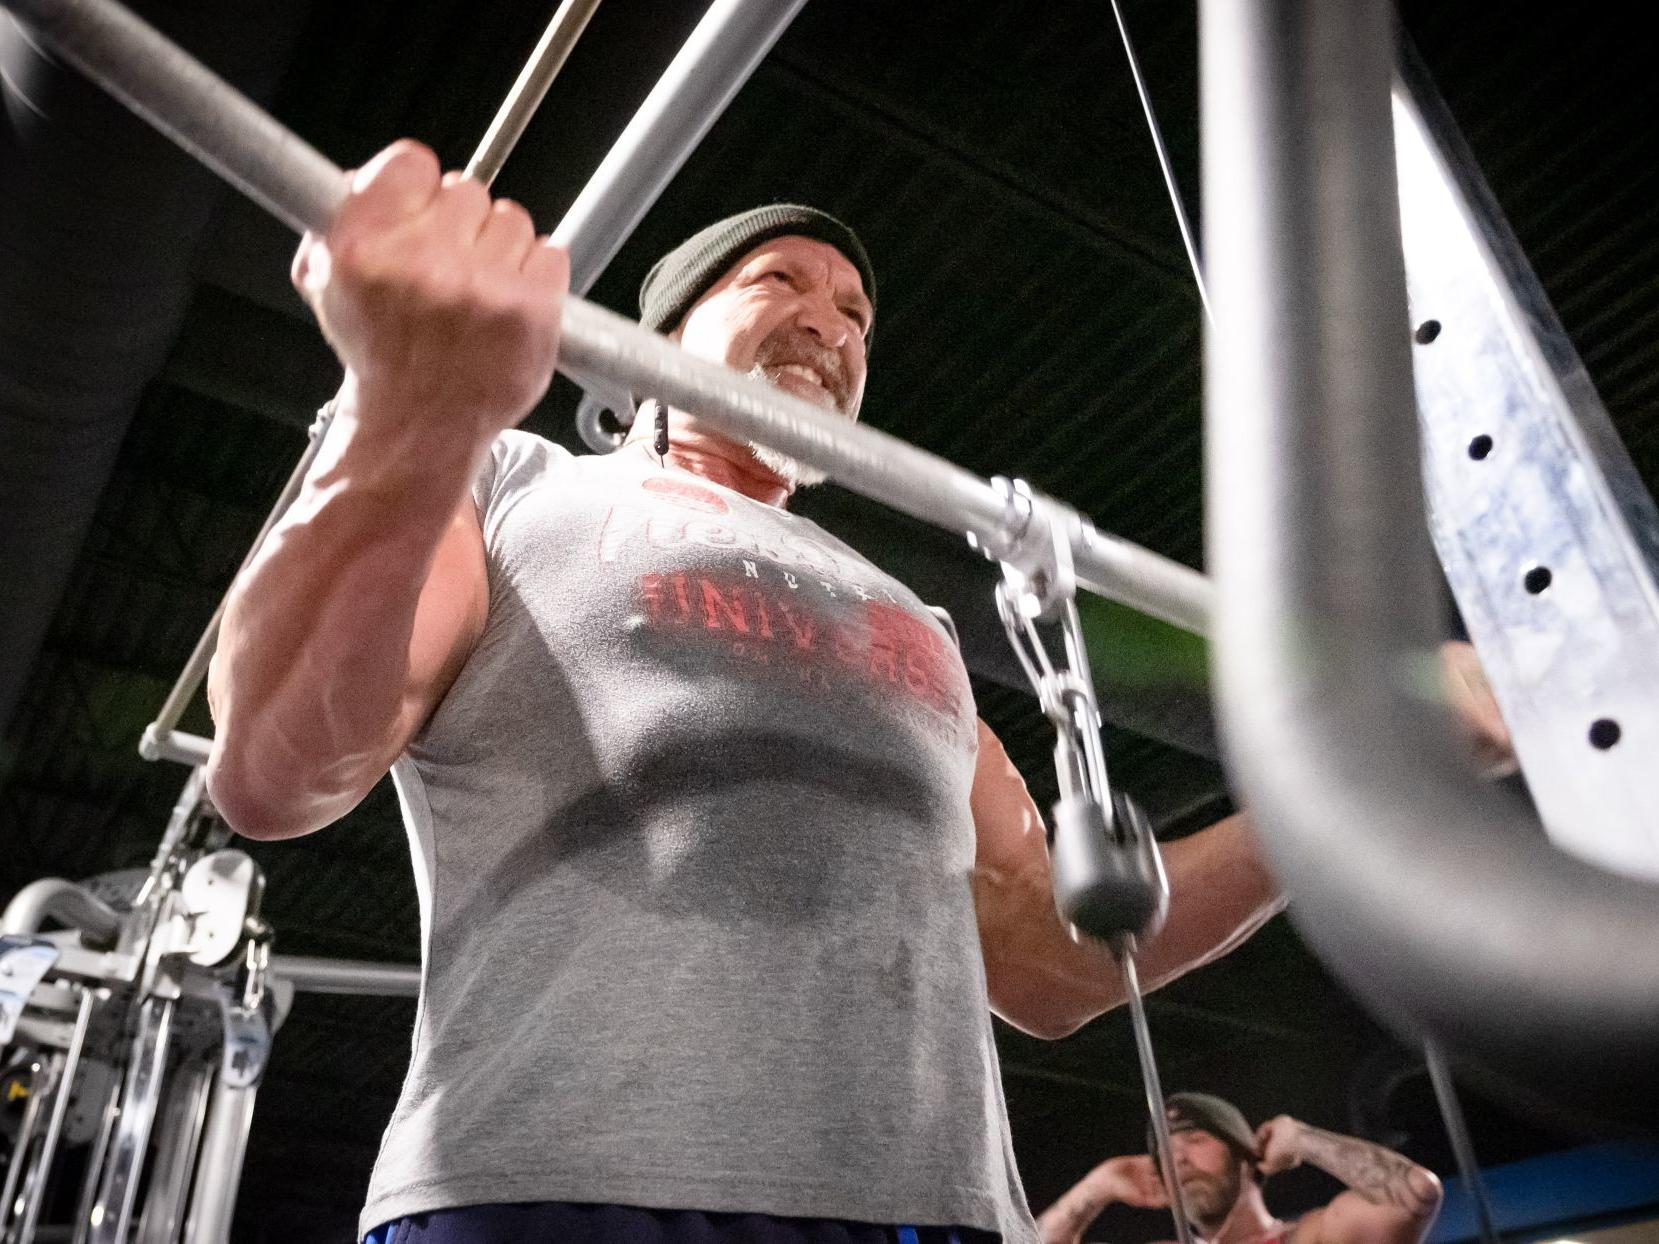 Omaha man pushes through back pain to hit the gym six days a week, sometimes twice a day